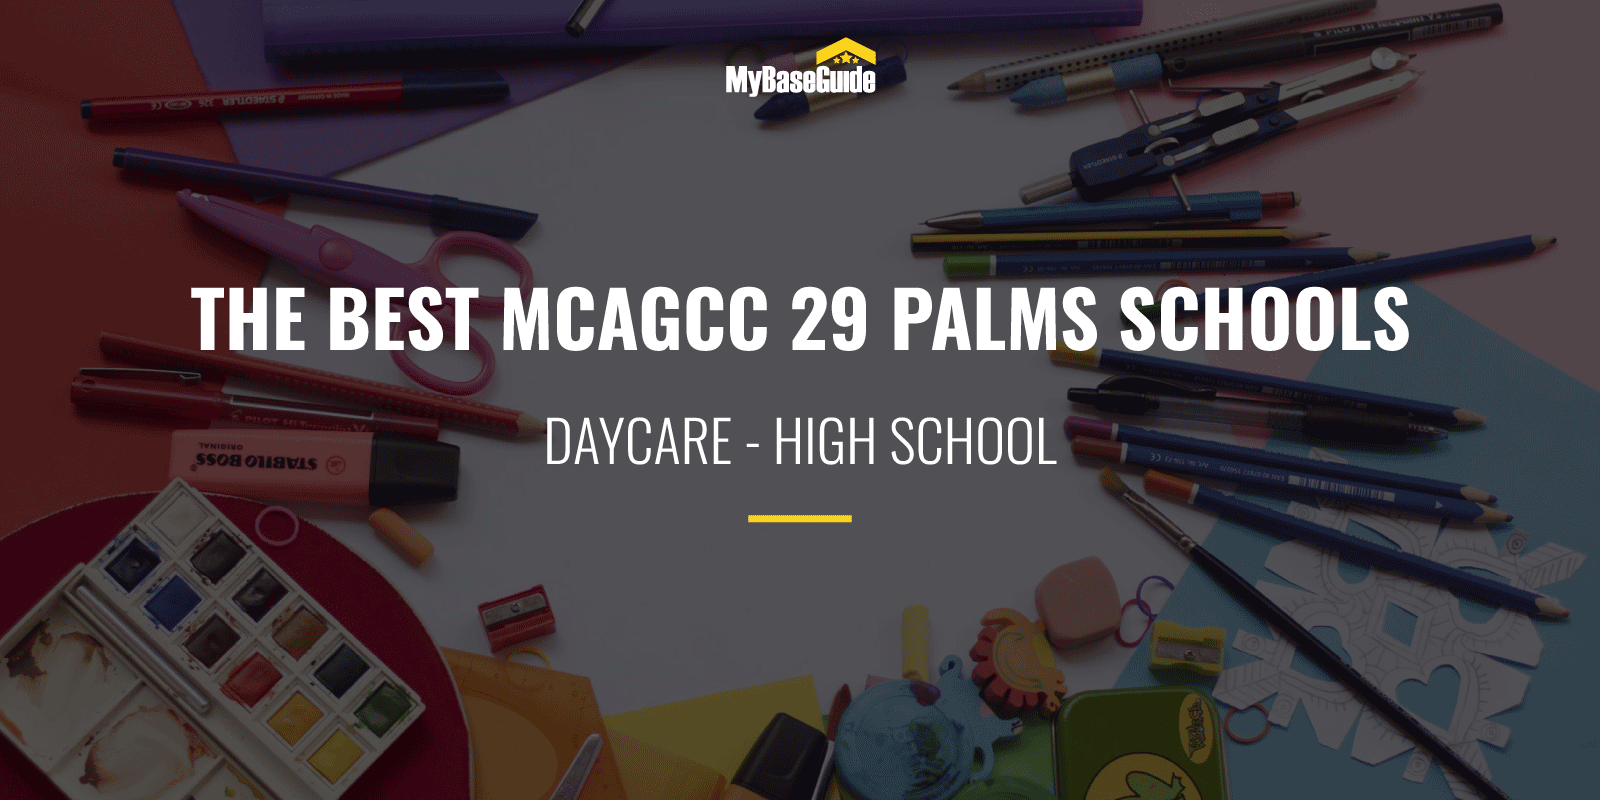 The Best MCAGCC 29 Palms Schools: Daycare - High School